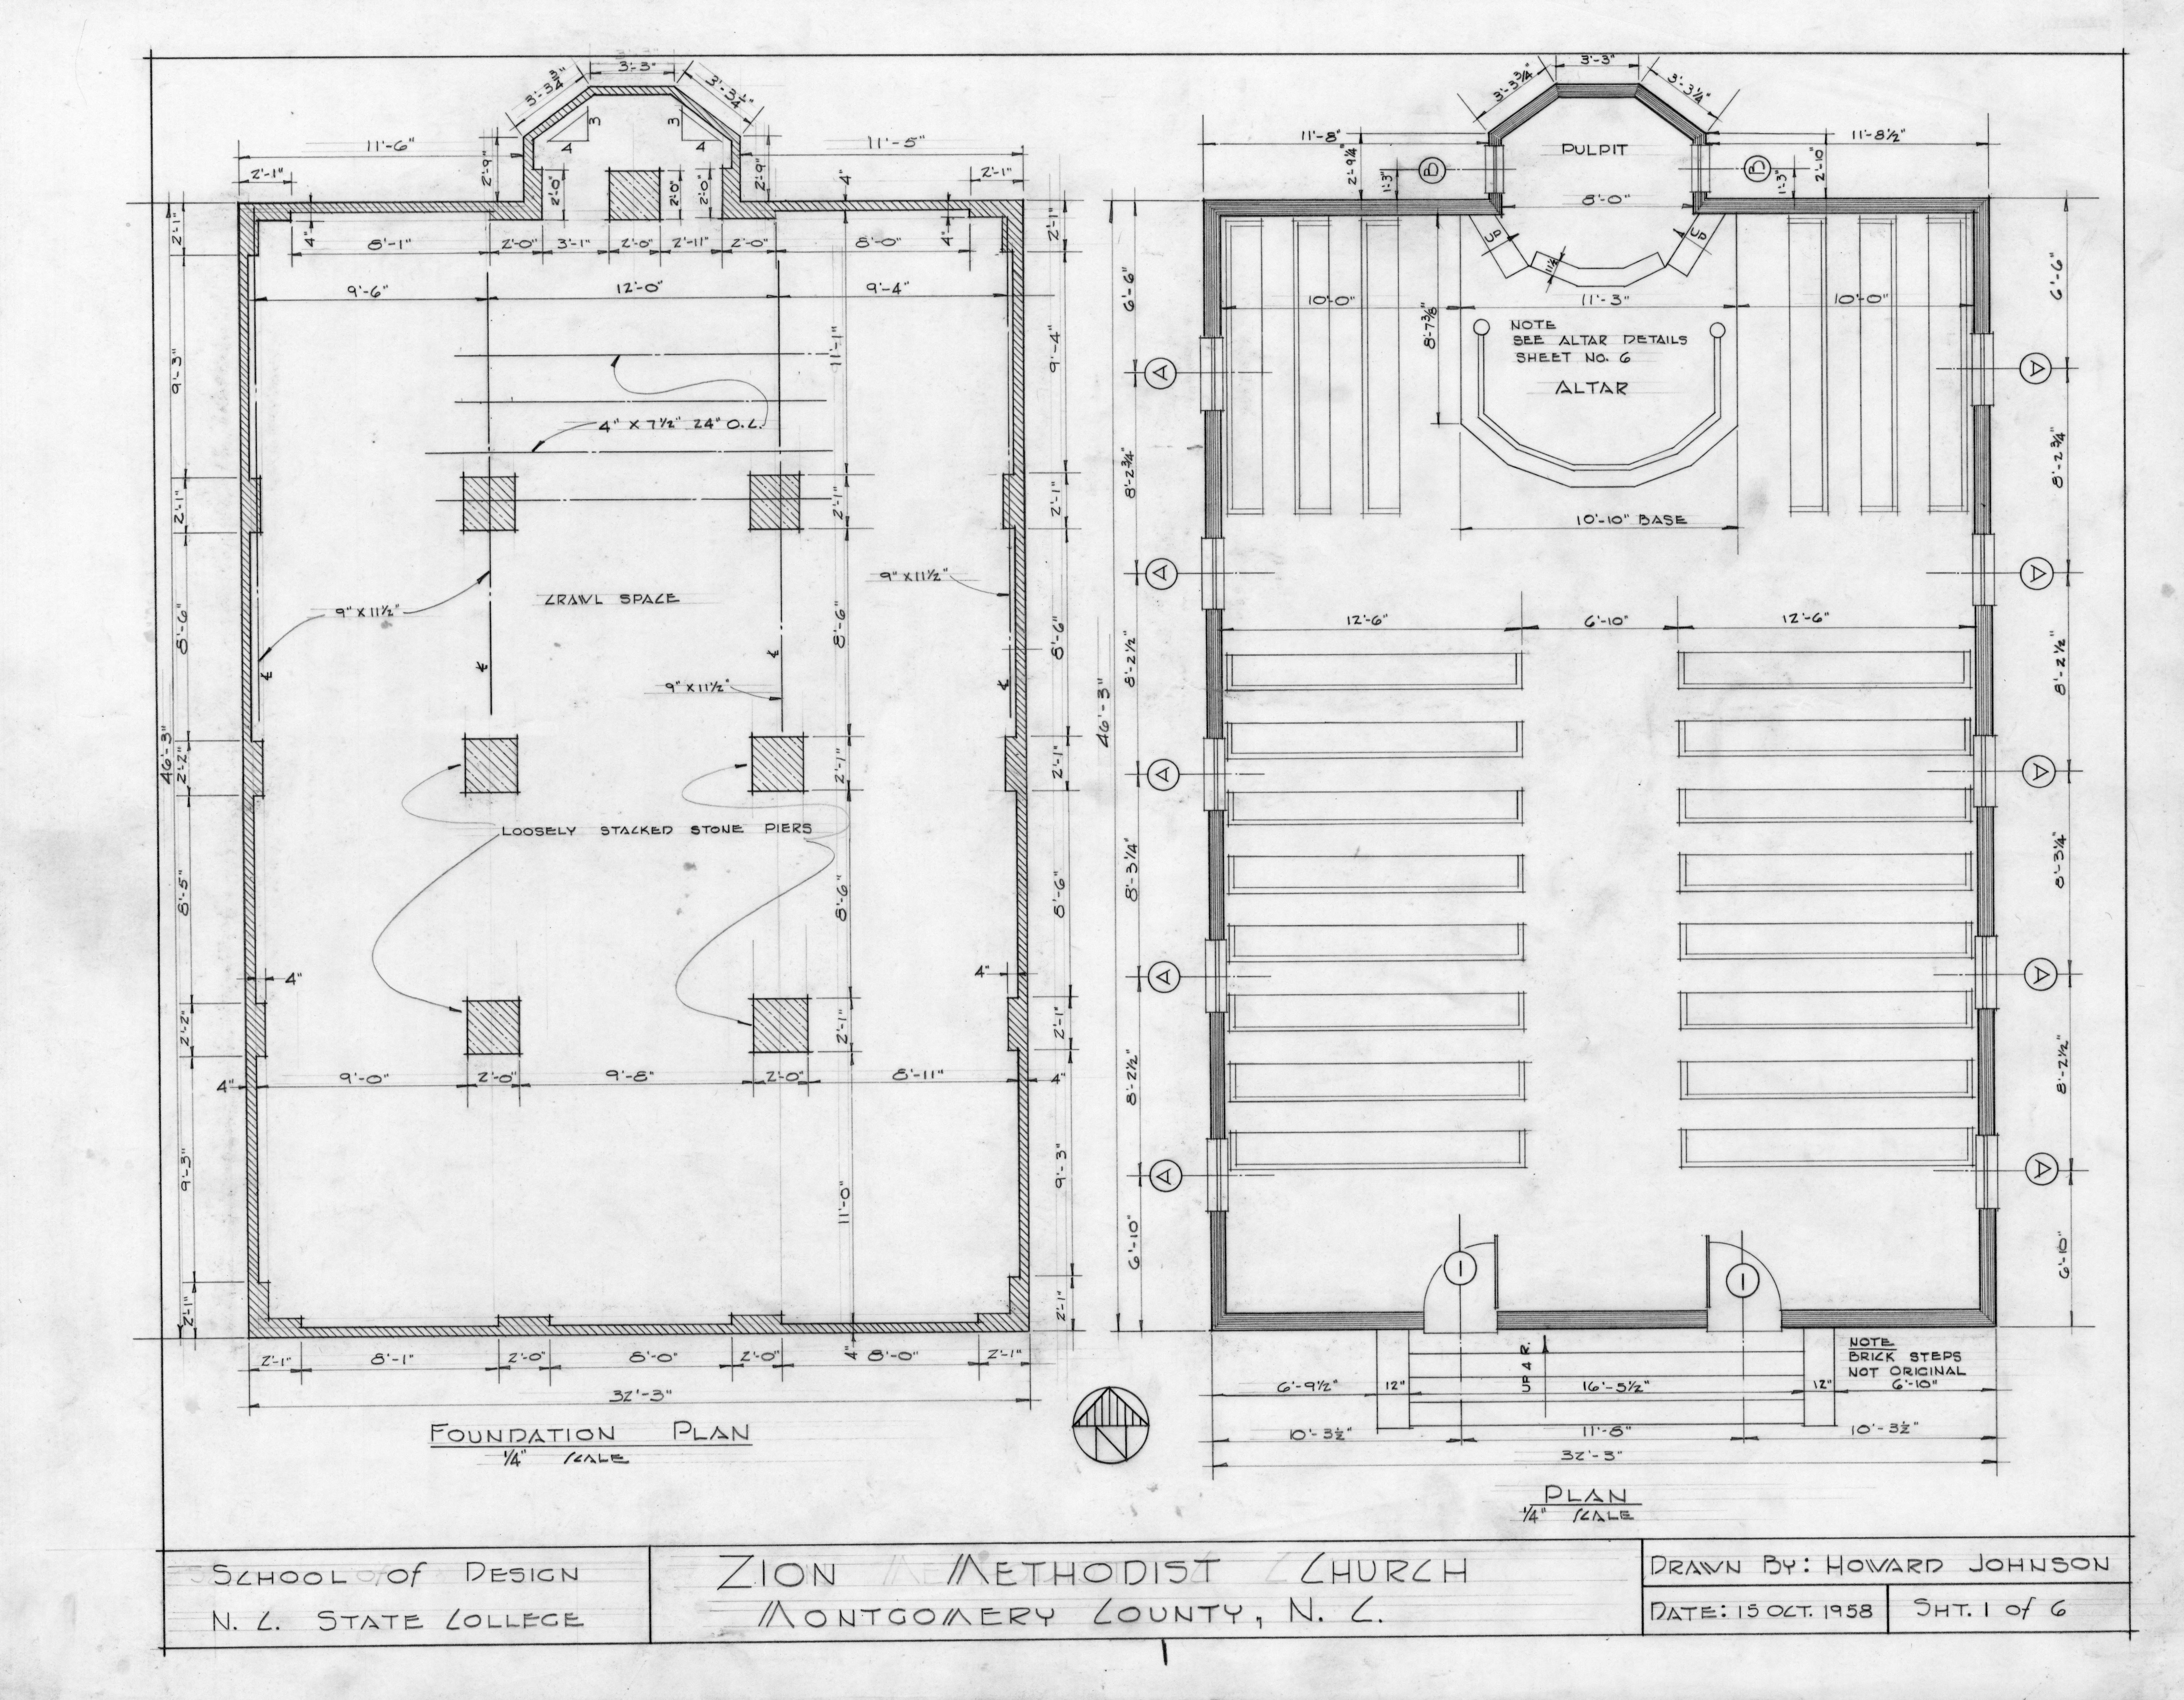 Foundation and floor plans zion methodist church for Church blueprints and floor plans